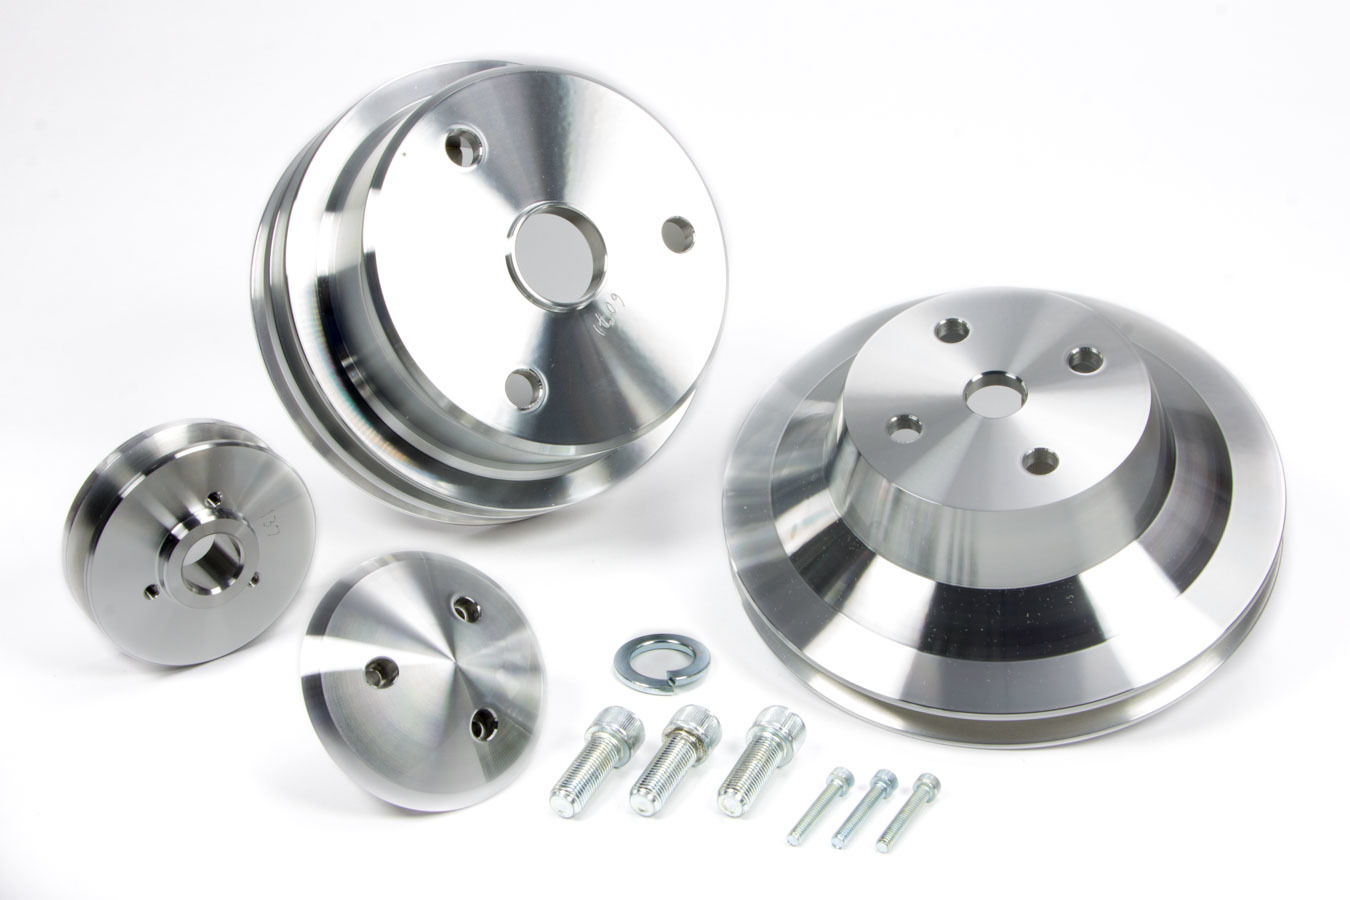 25628 Pulley Kit, Performance Ratio, 2 Groove V-Belt, Aluminum, Clear Powder Coat, Long Water Pump, Small Block Chevy, Kit